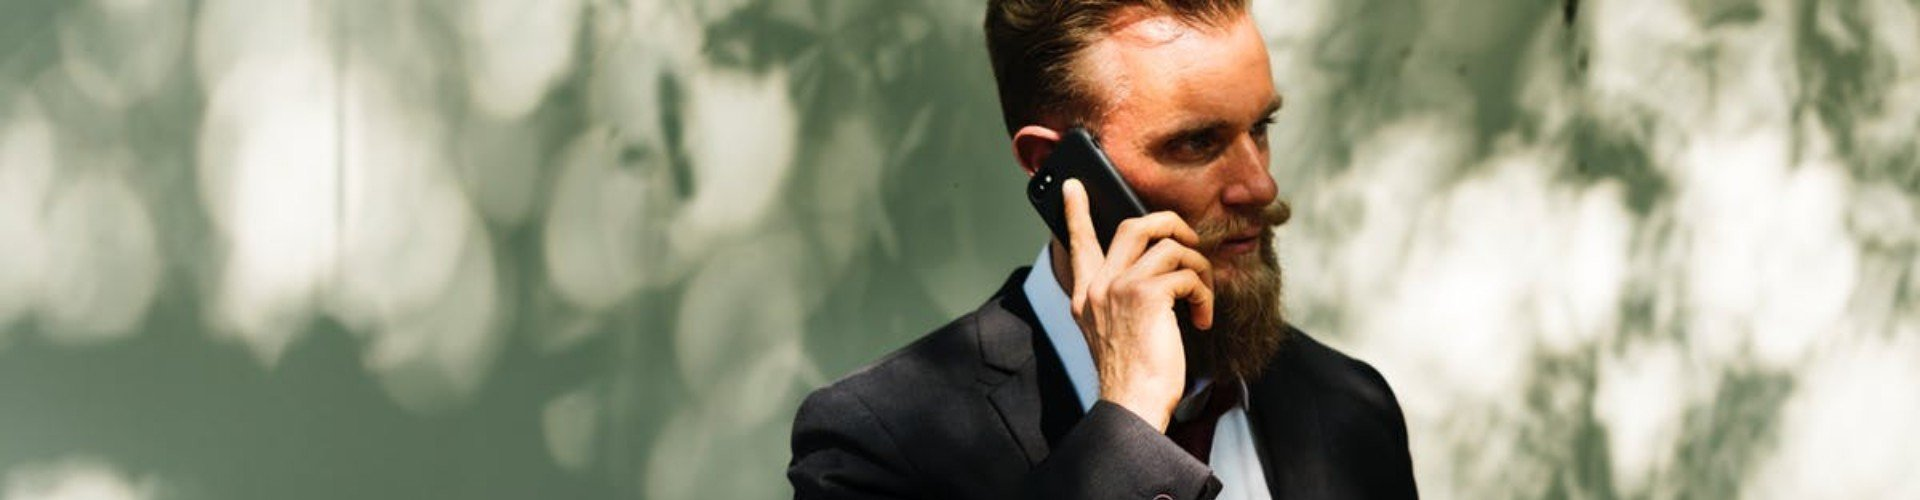 Top 20 Phone Interview Questions & Answers [Best Examples]